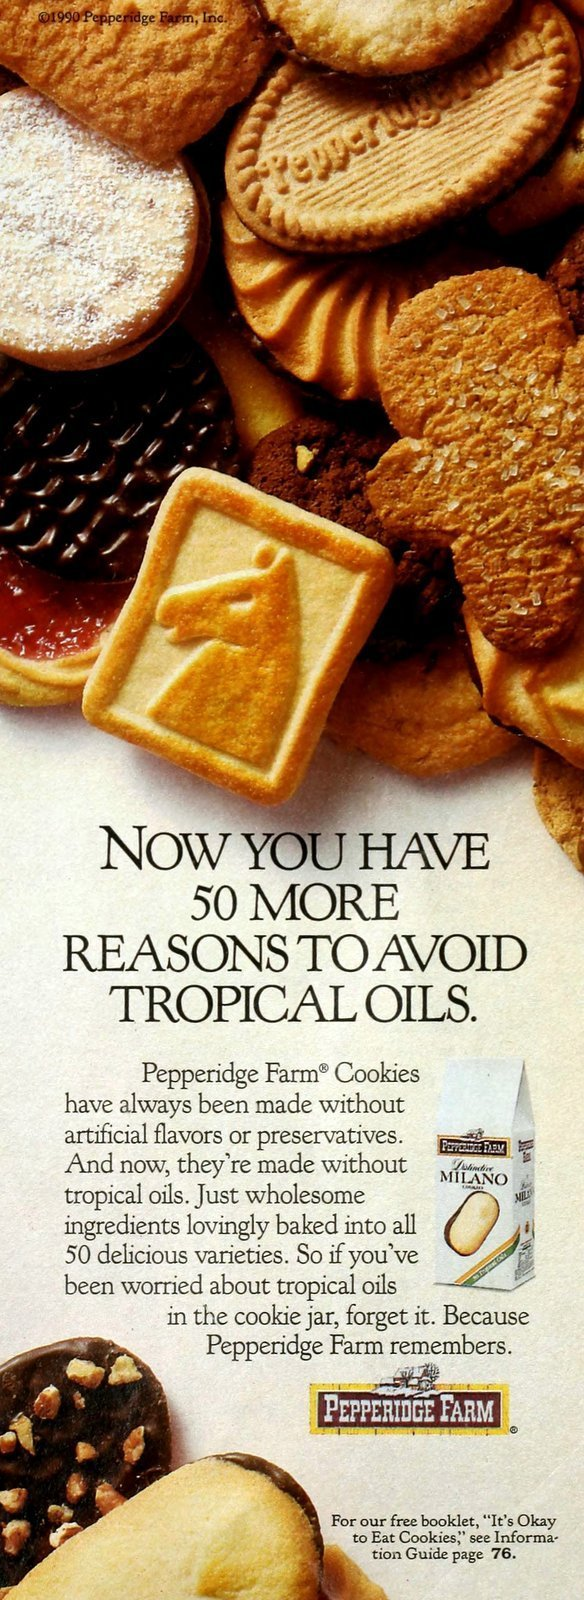 Vintage Pepperidge Farm packaged cookies without tropical oil (1990)